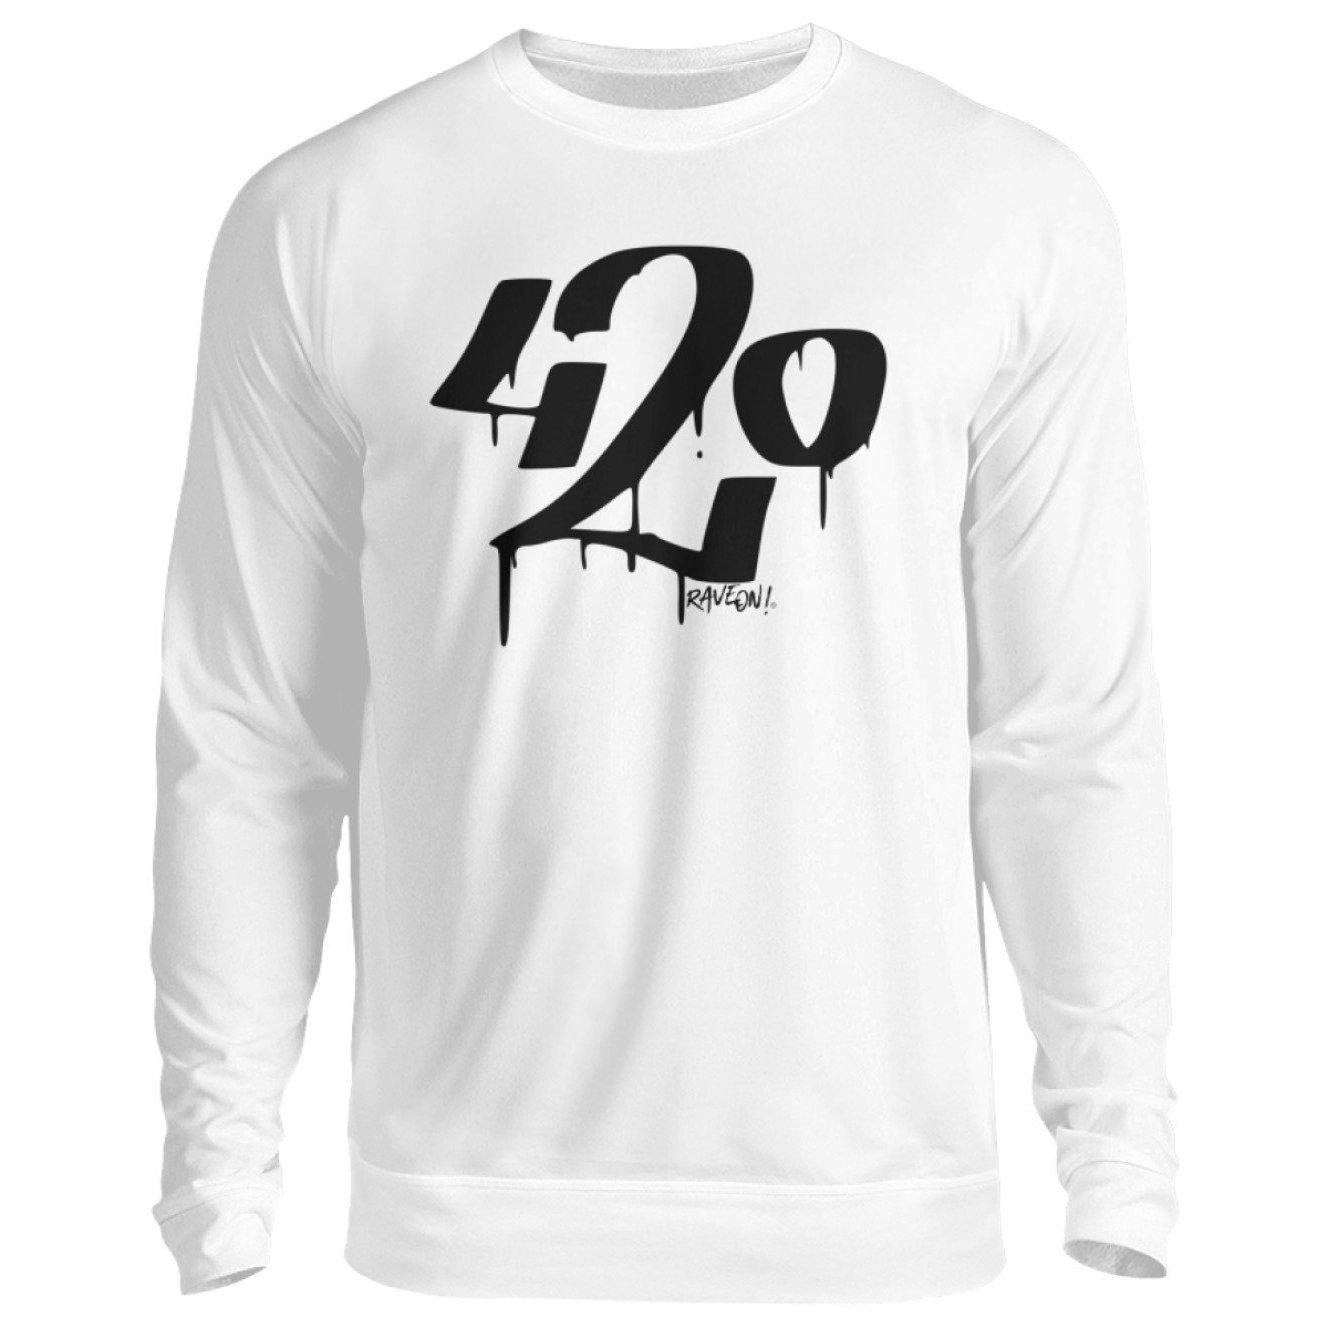 420 white - Rave On!® - Unisex Pullover Unisex Sweatshirt Arctic White / S - Rave On!® der Club & Techno Szene Shop für Coole Junge Mode Streetwear Style & Fashion Outfits + Sexy Festival 420 Stuff